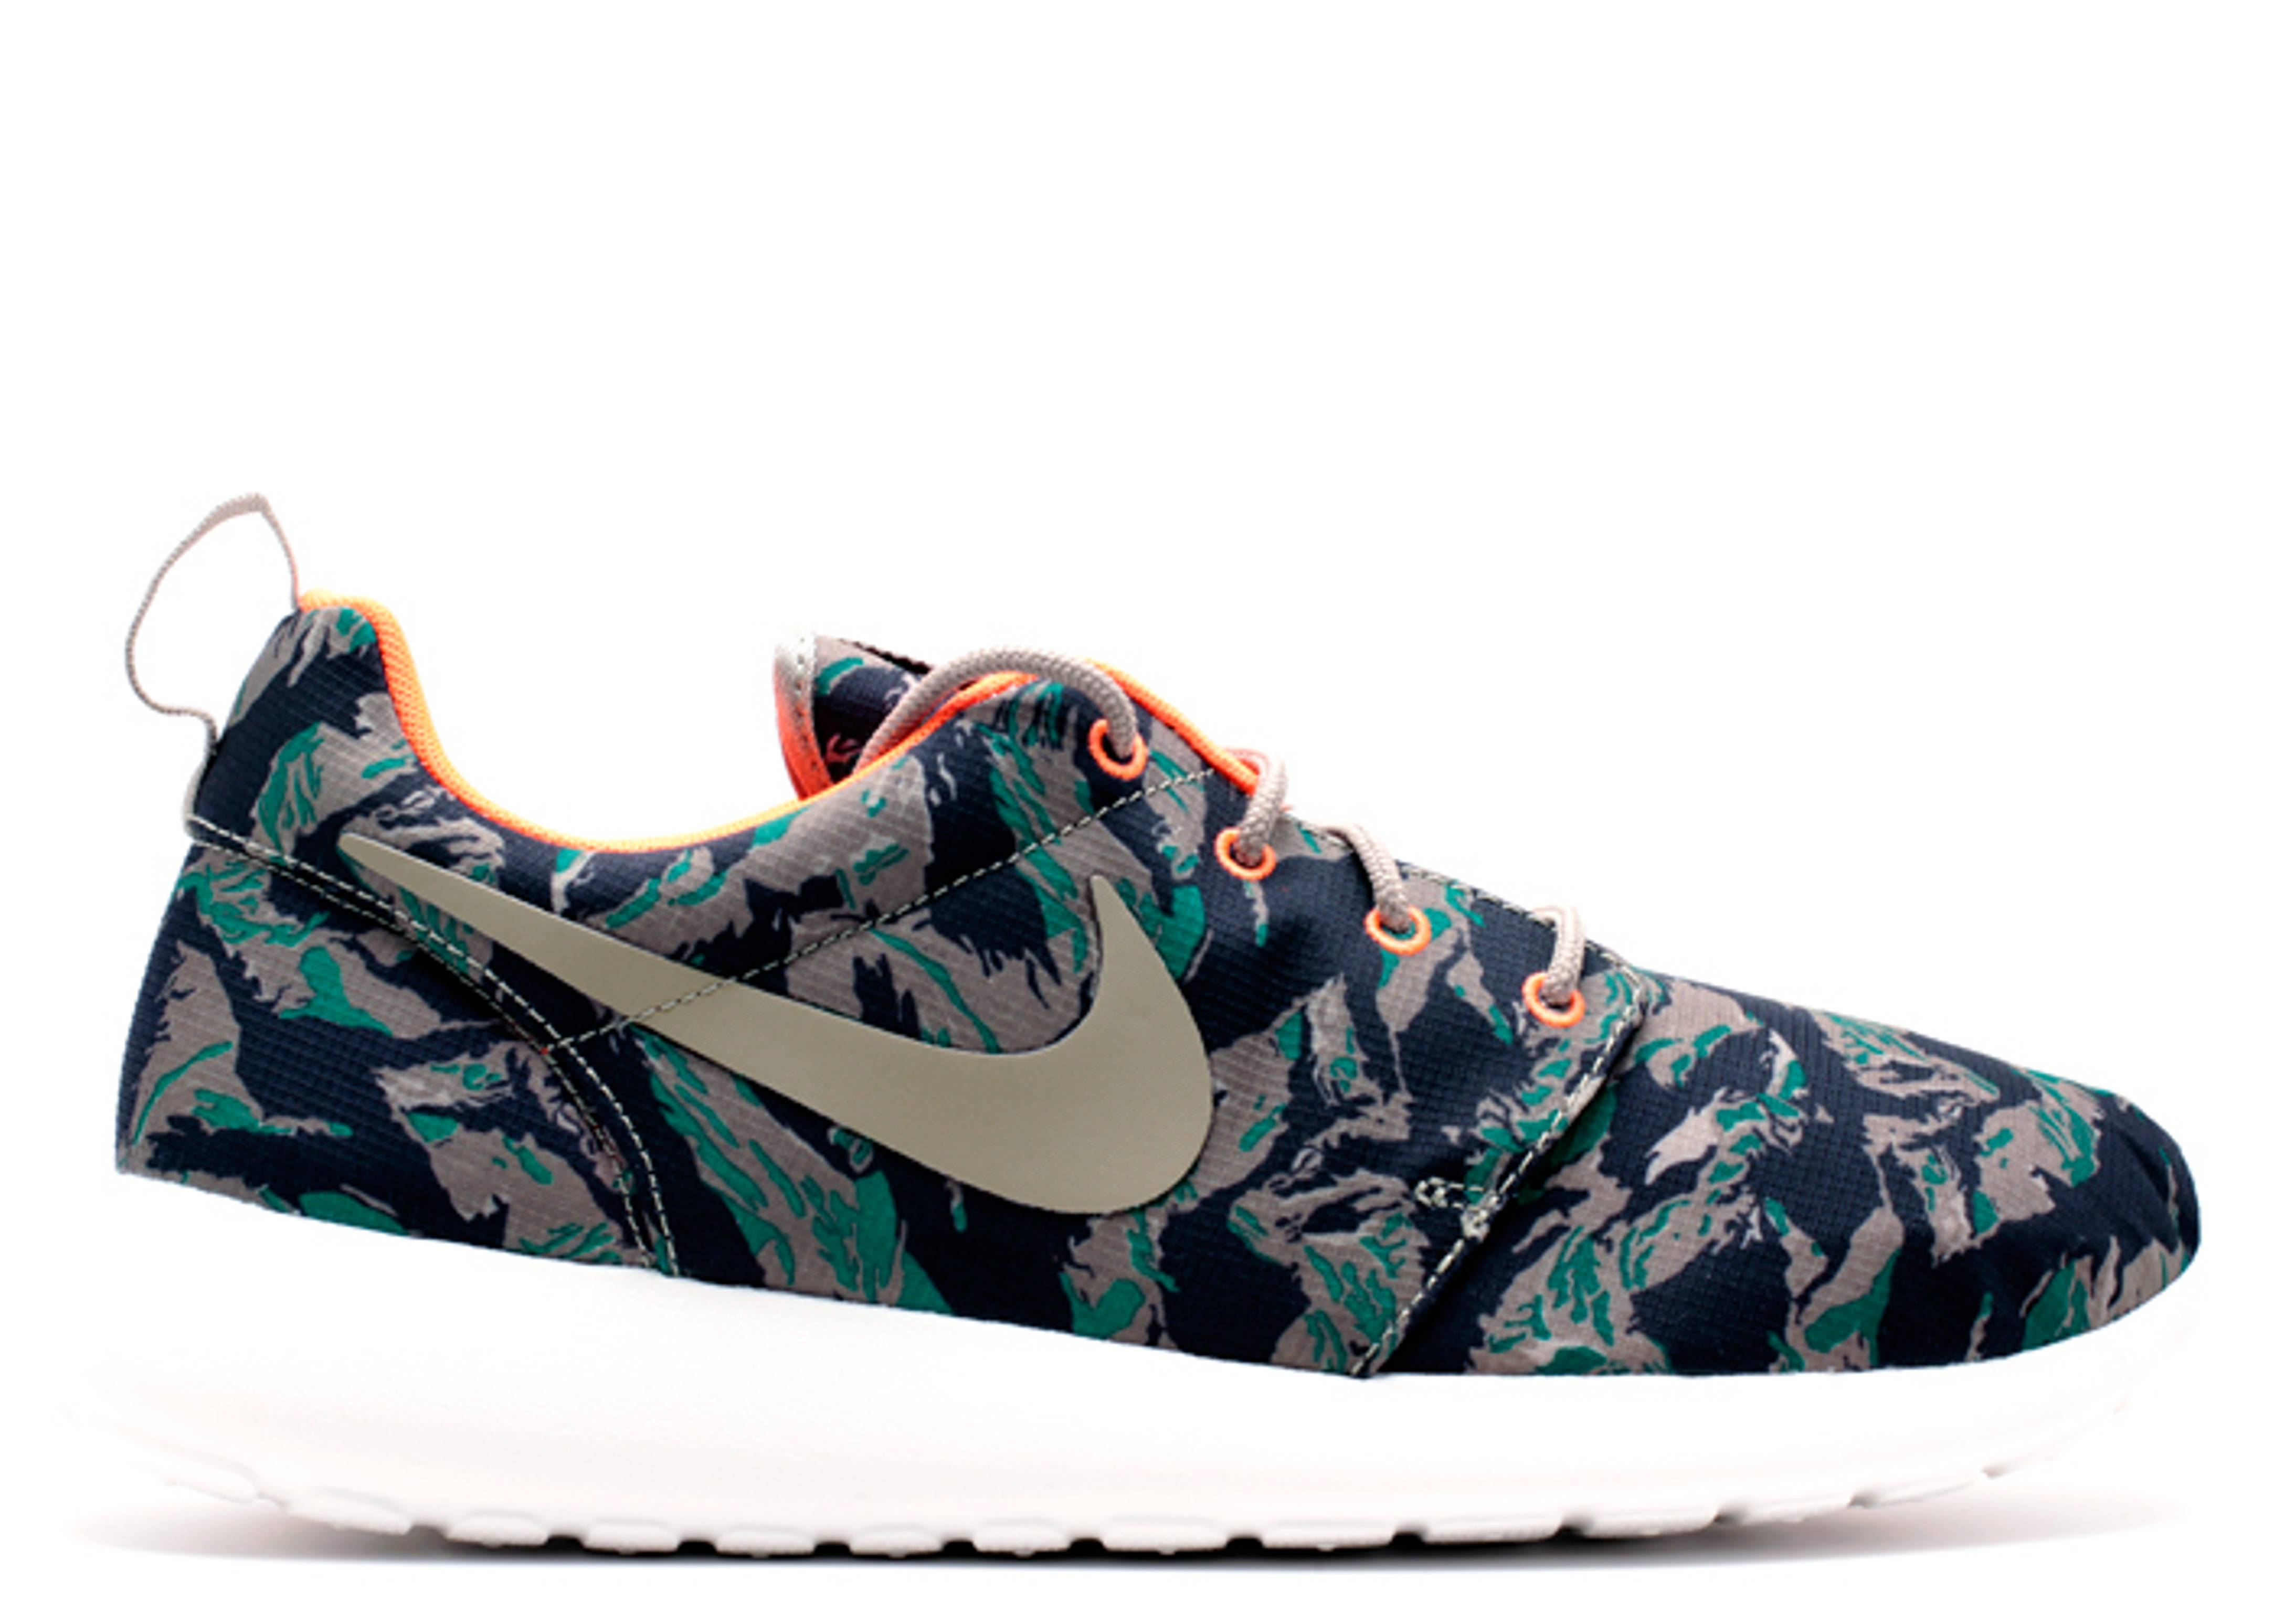 rosherun print tiger camo nike 655206 203 medium. Black Bedroom Furniture Sets. Home Design Ideas